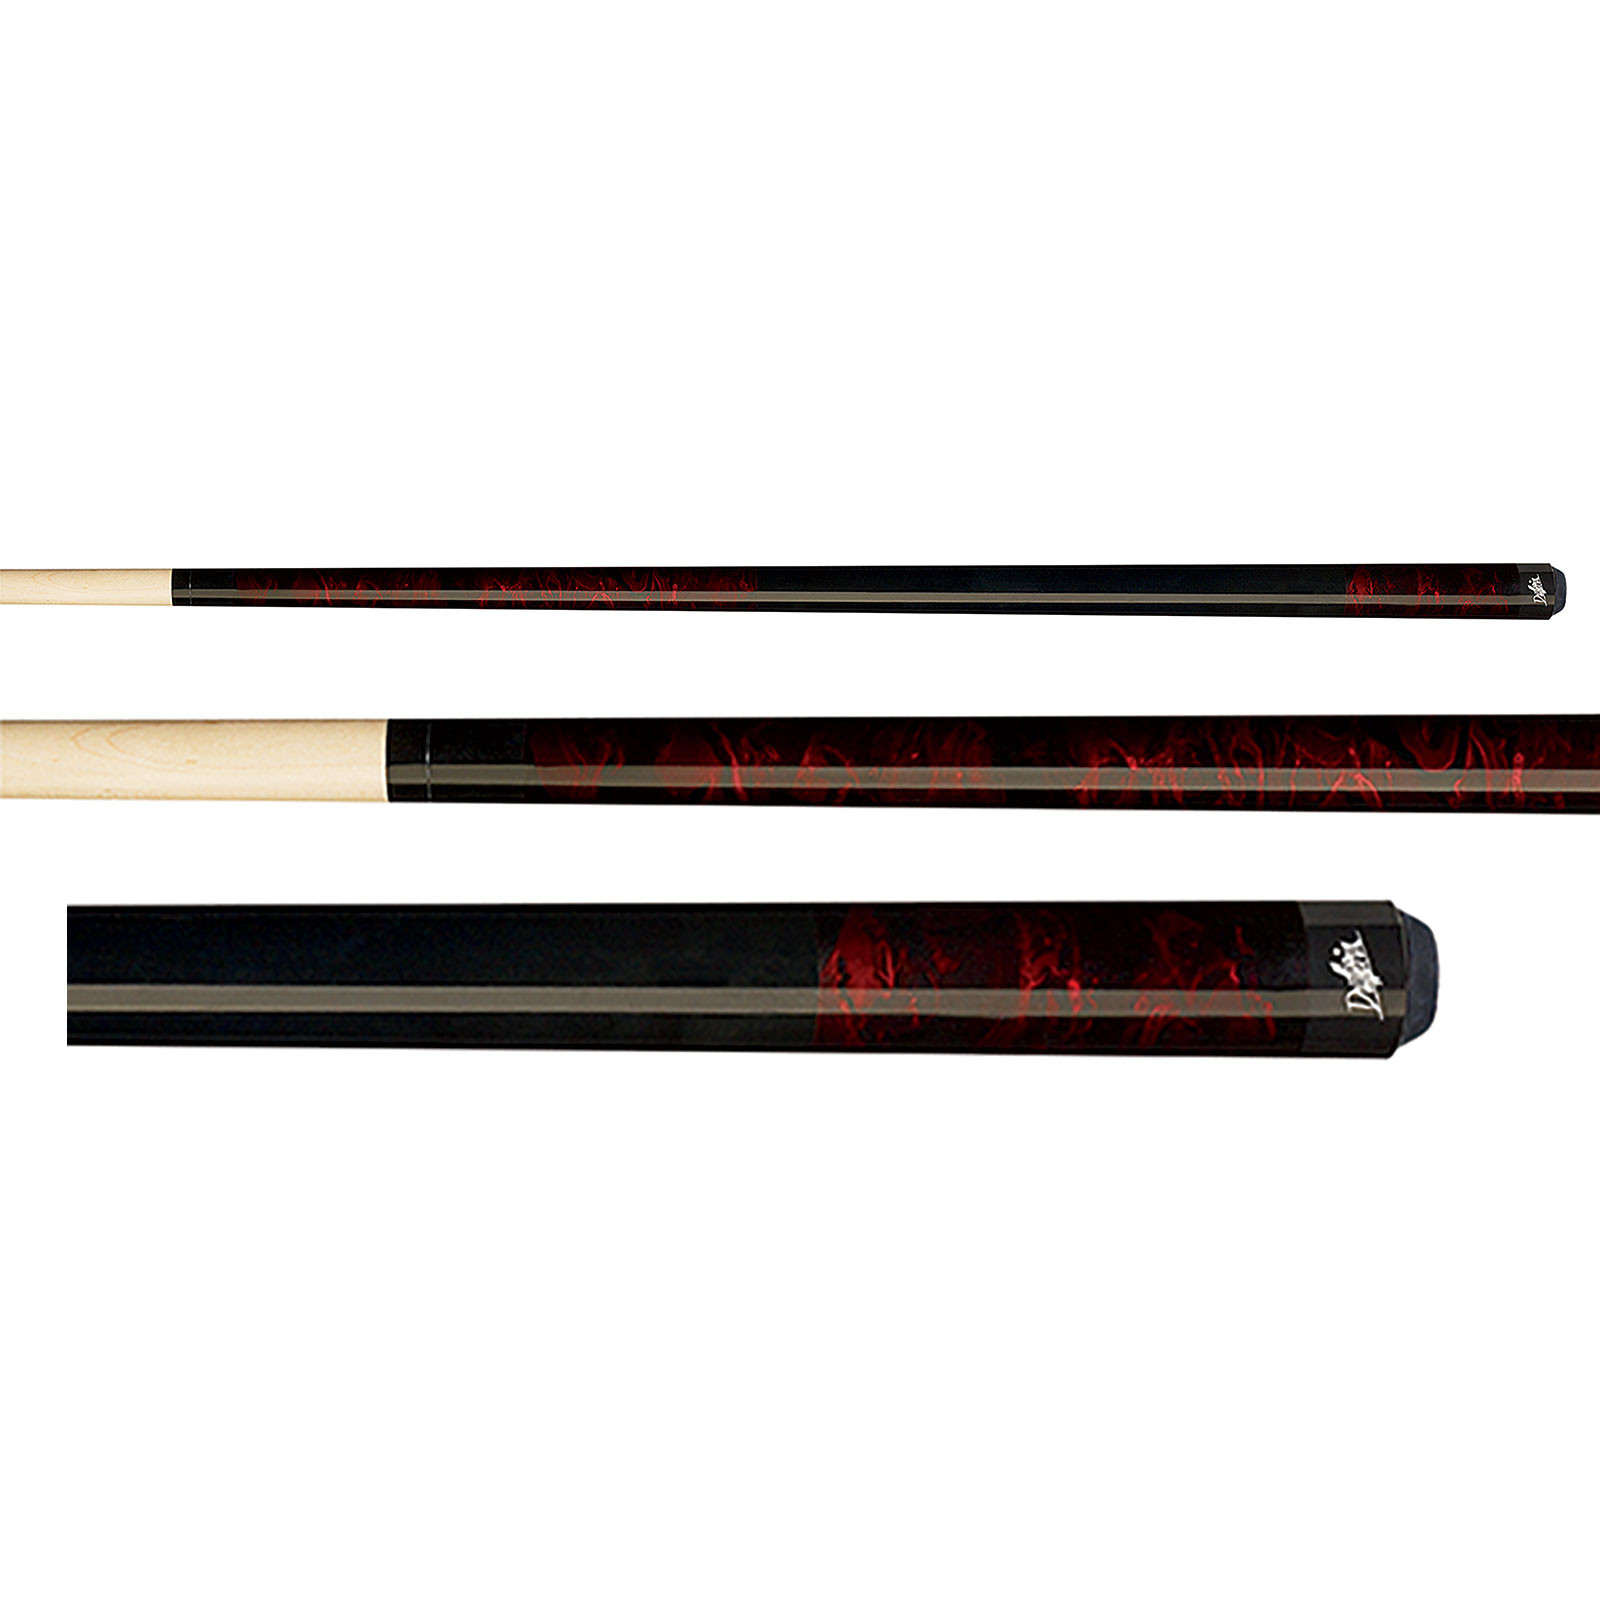 Dufferin D-202 Marbled Red Dream Pool Cue Stick